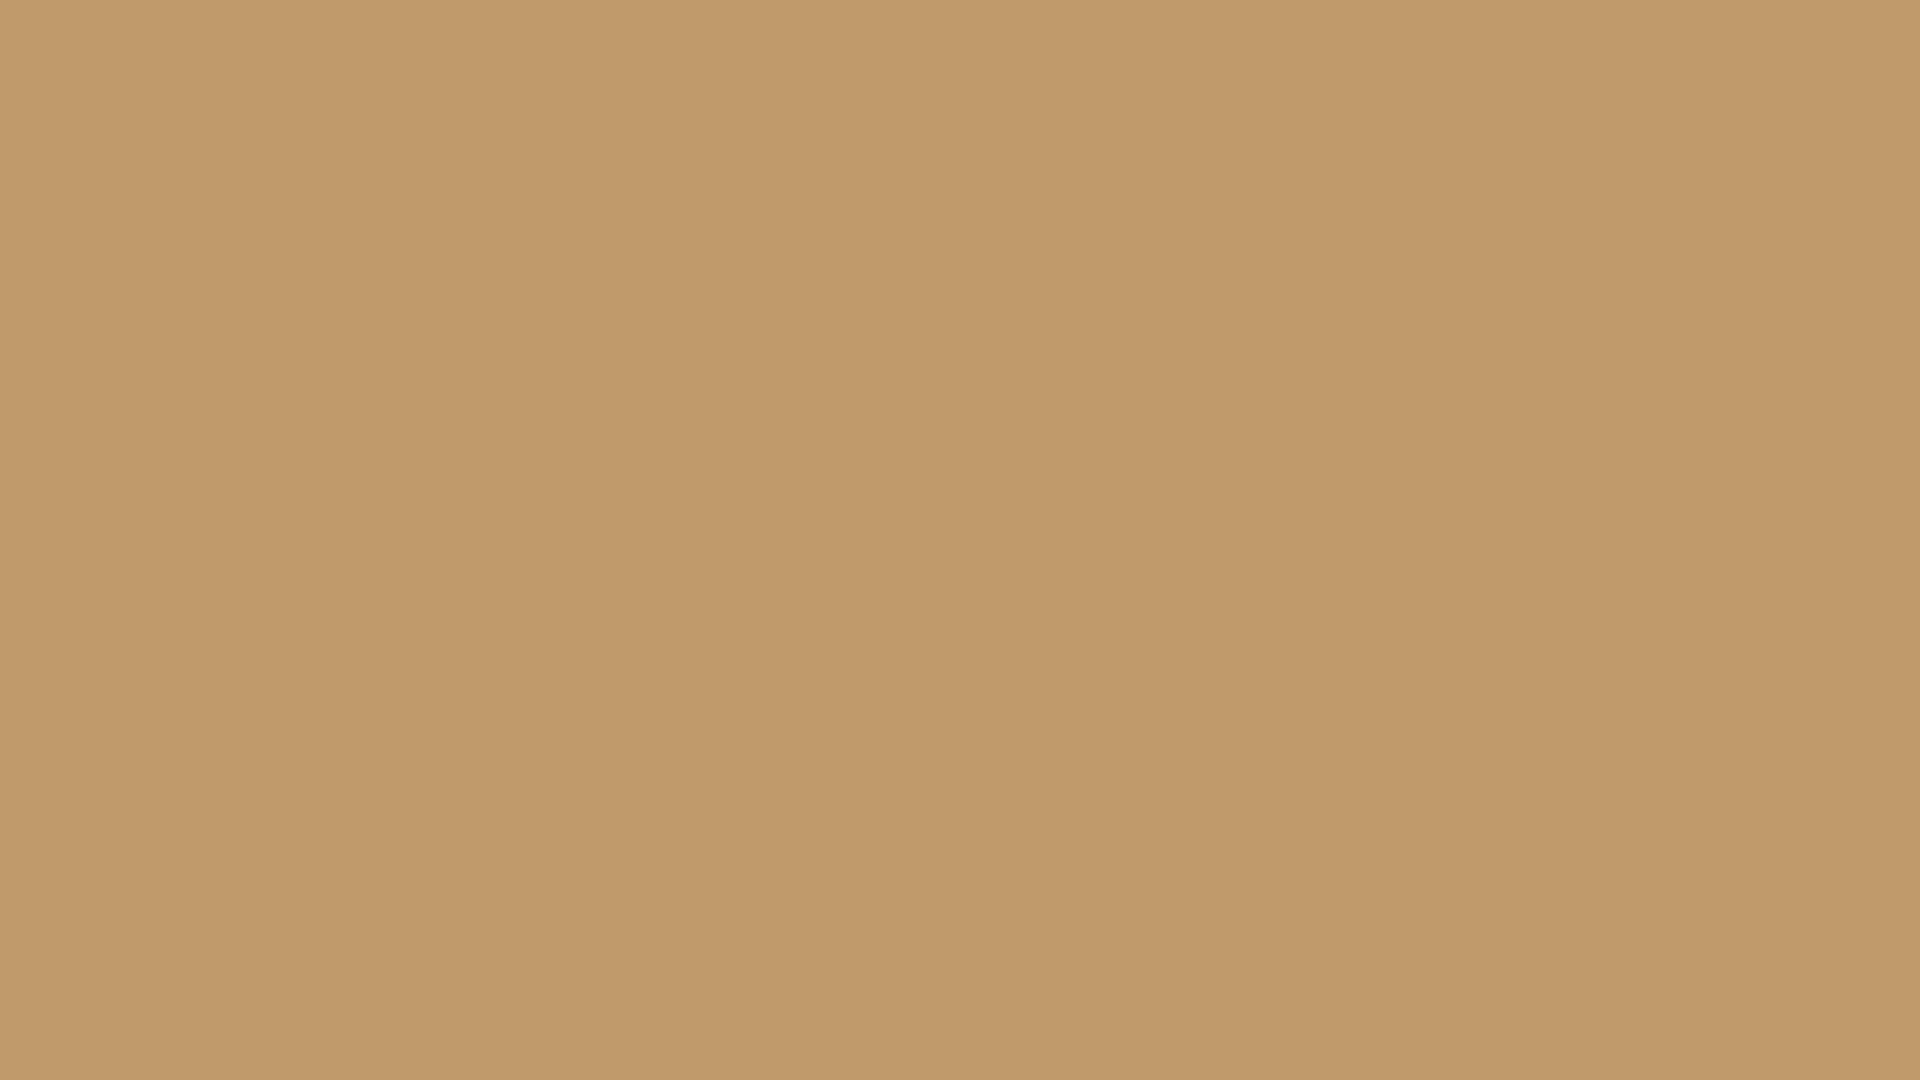 1920x1080 Wood Brown Solid Color Background